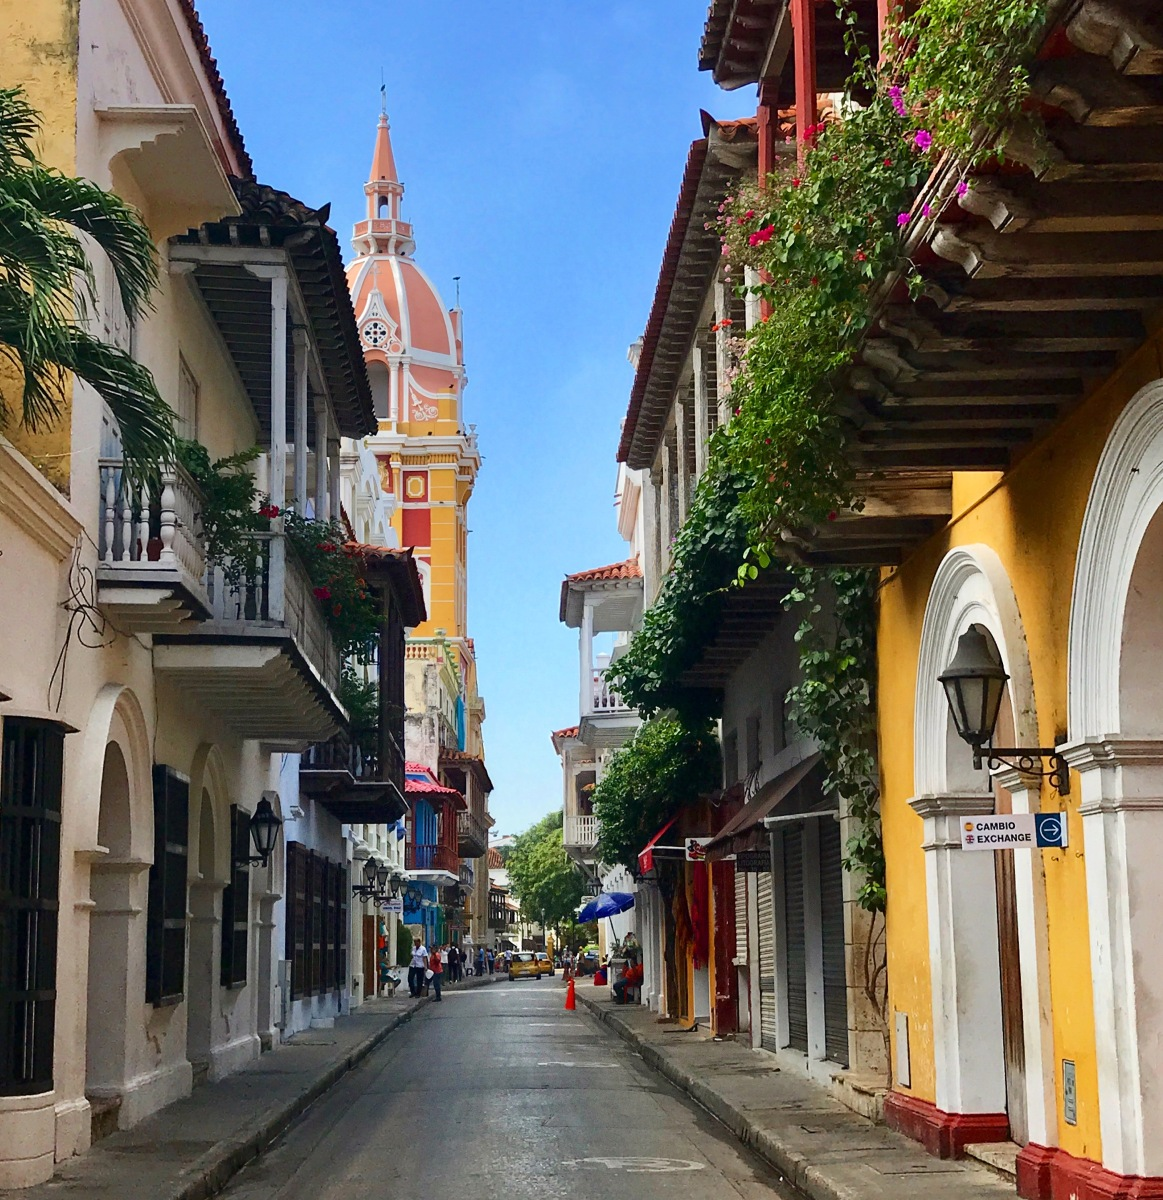 My Love Letter to Cartagena